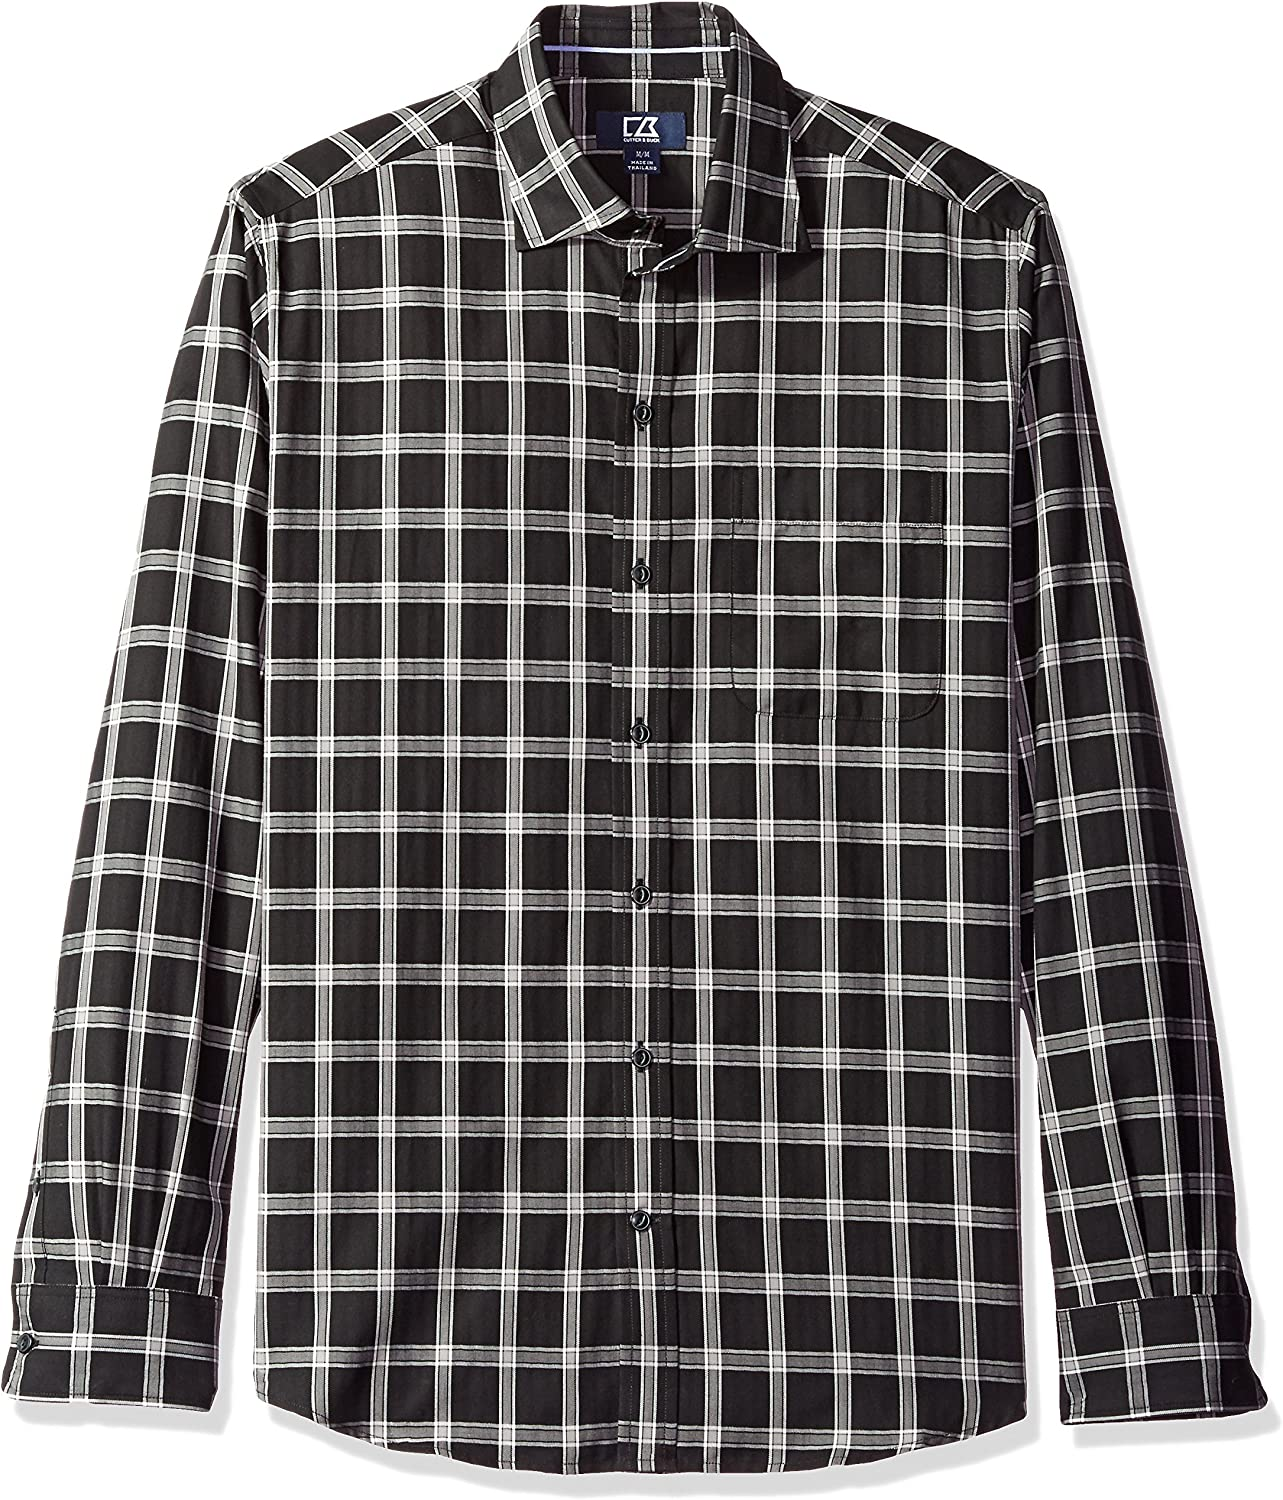 Cutter & Buck Men's Big and Tall Long Sleeve Summit Check